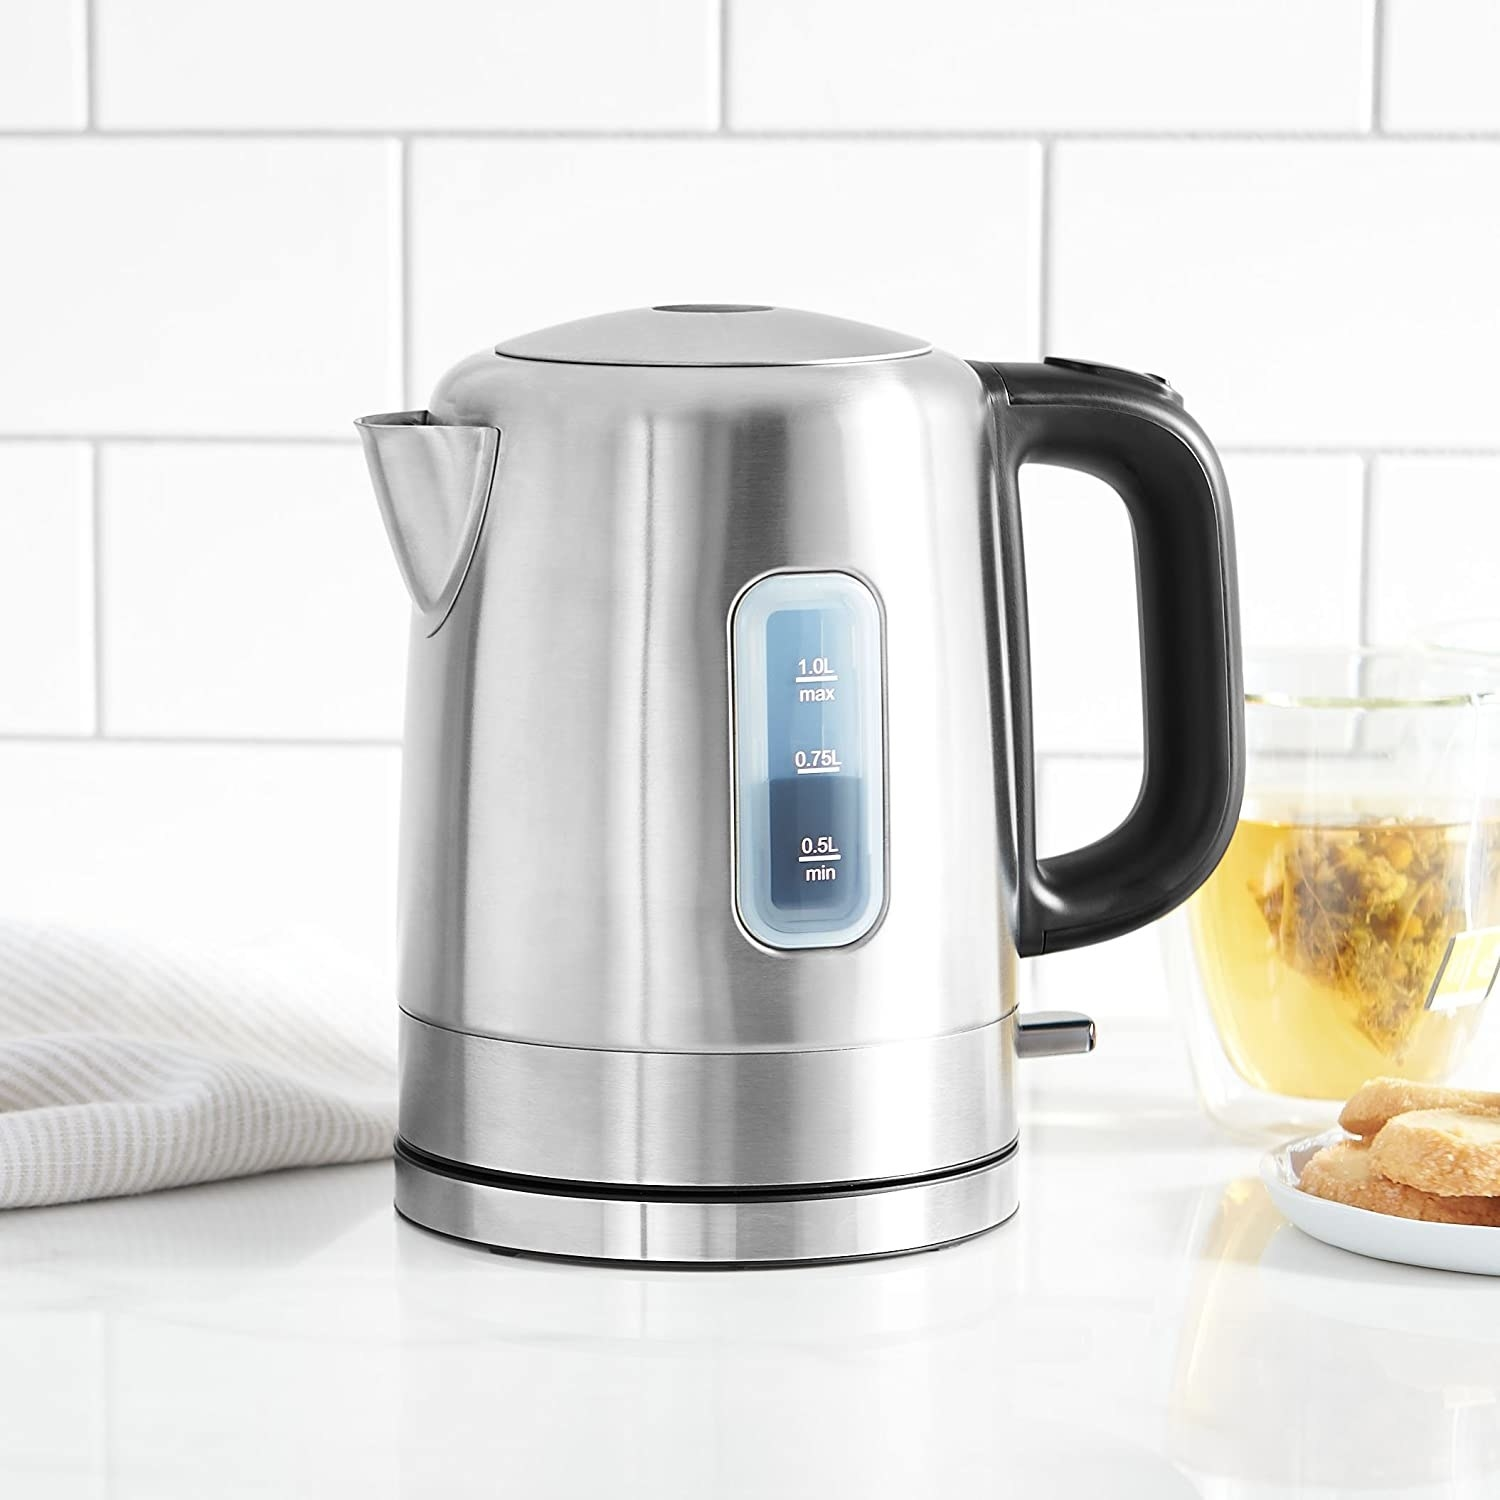 the stainless steel kettle